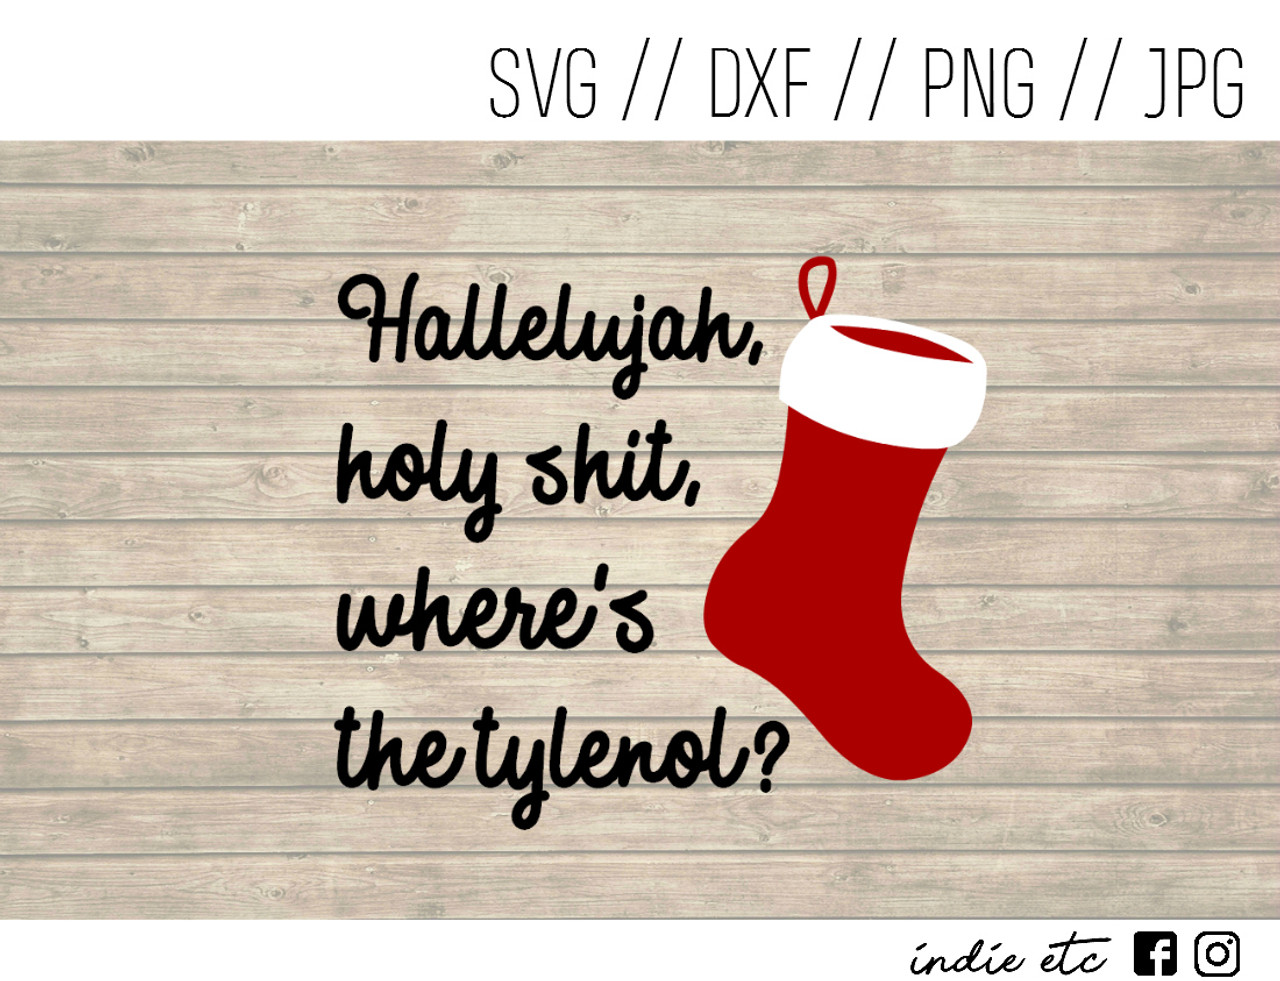 Christmas Vacation Hallelujah.Hallelujah Holy Shit Where S The Tylenol Digital Art File Svg Dxf Png Jpeg